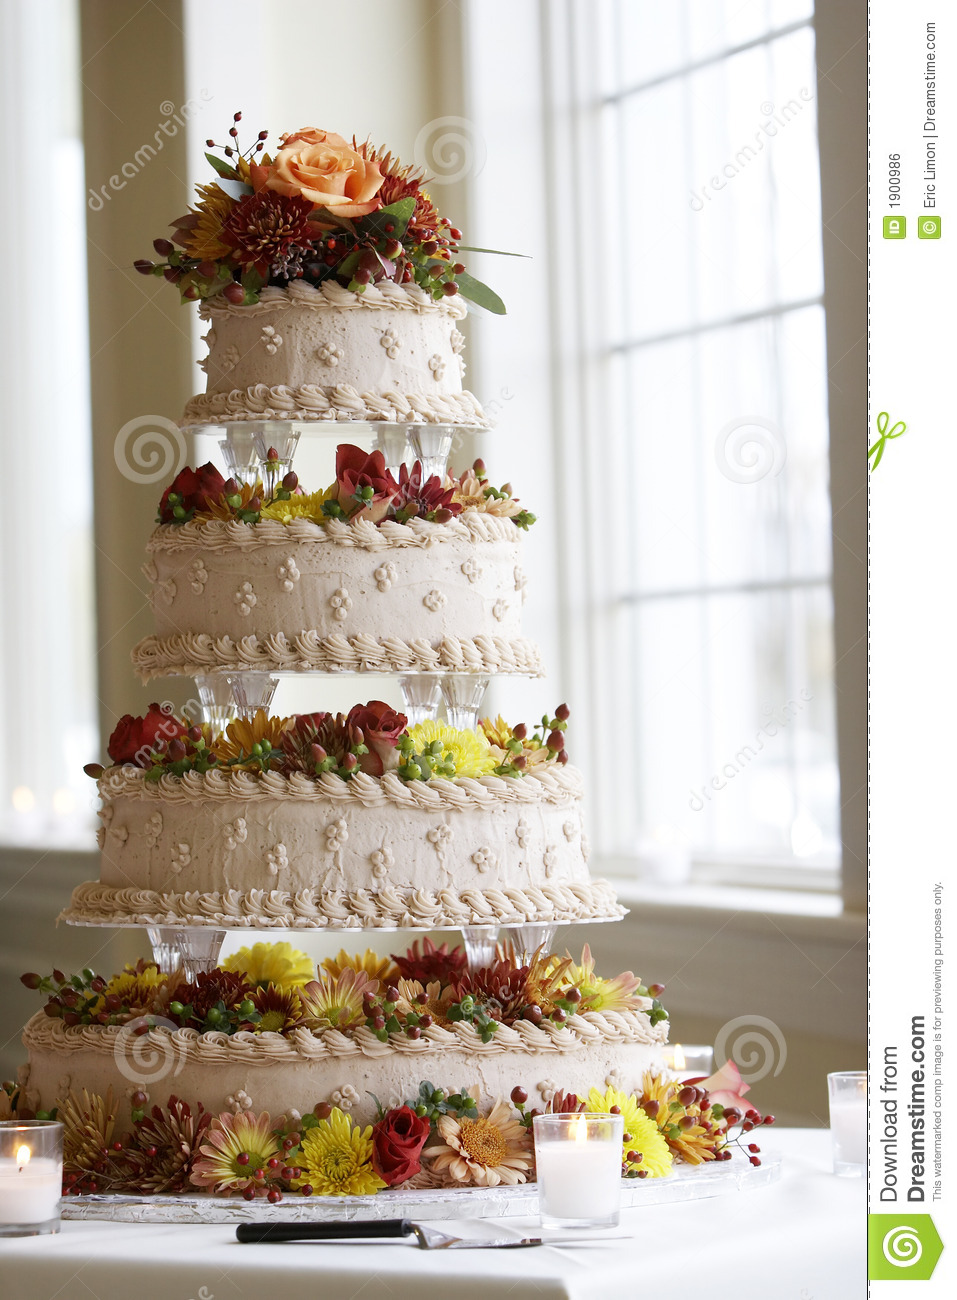 Fancy Wedding Cake Stock Photo Image Of Baked Bridal